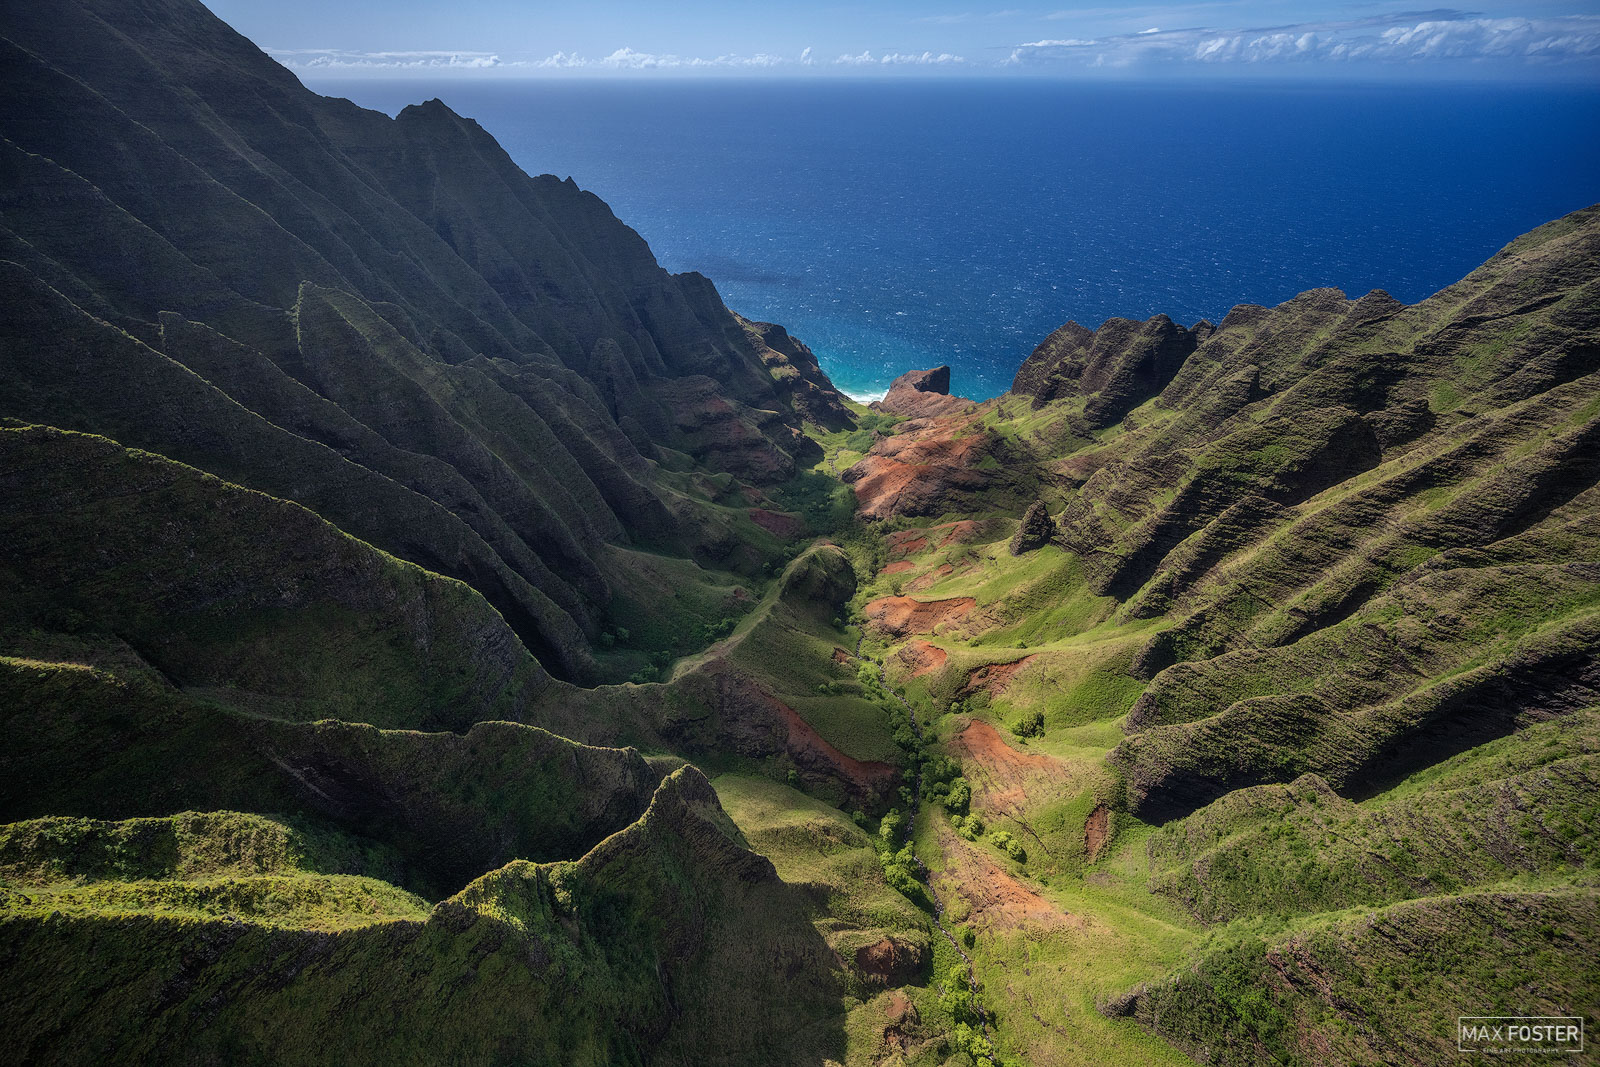 Fine Art Limited Edition of 50 The Kalalau Valley is located on the northwest side of the island of Kauai in Nā Pali Coast State...